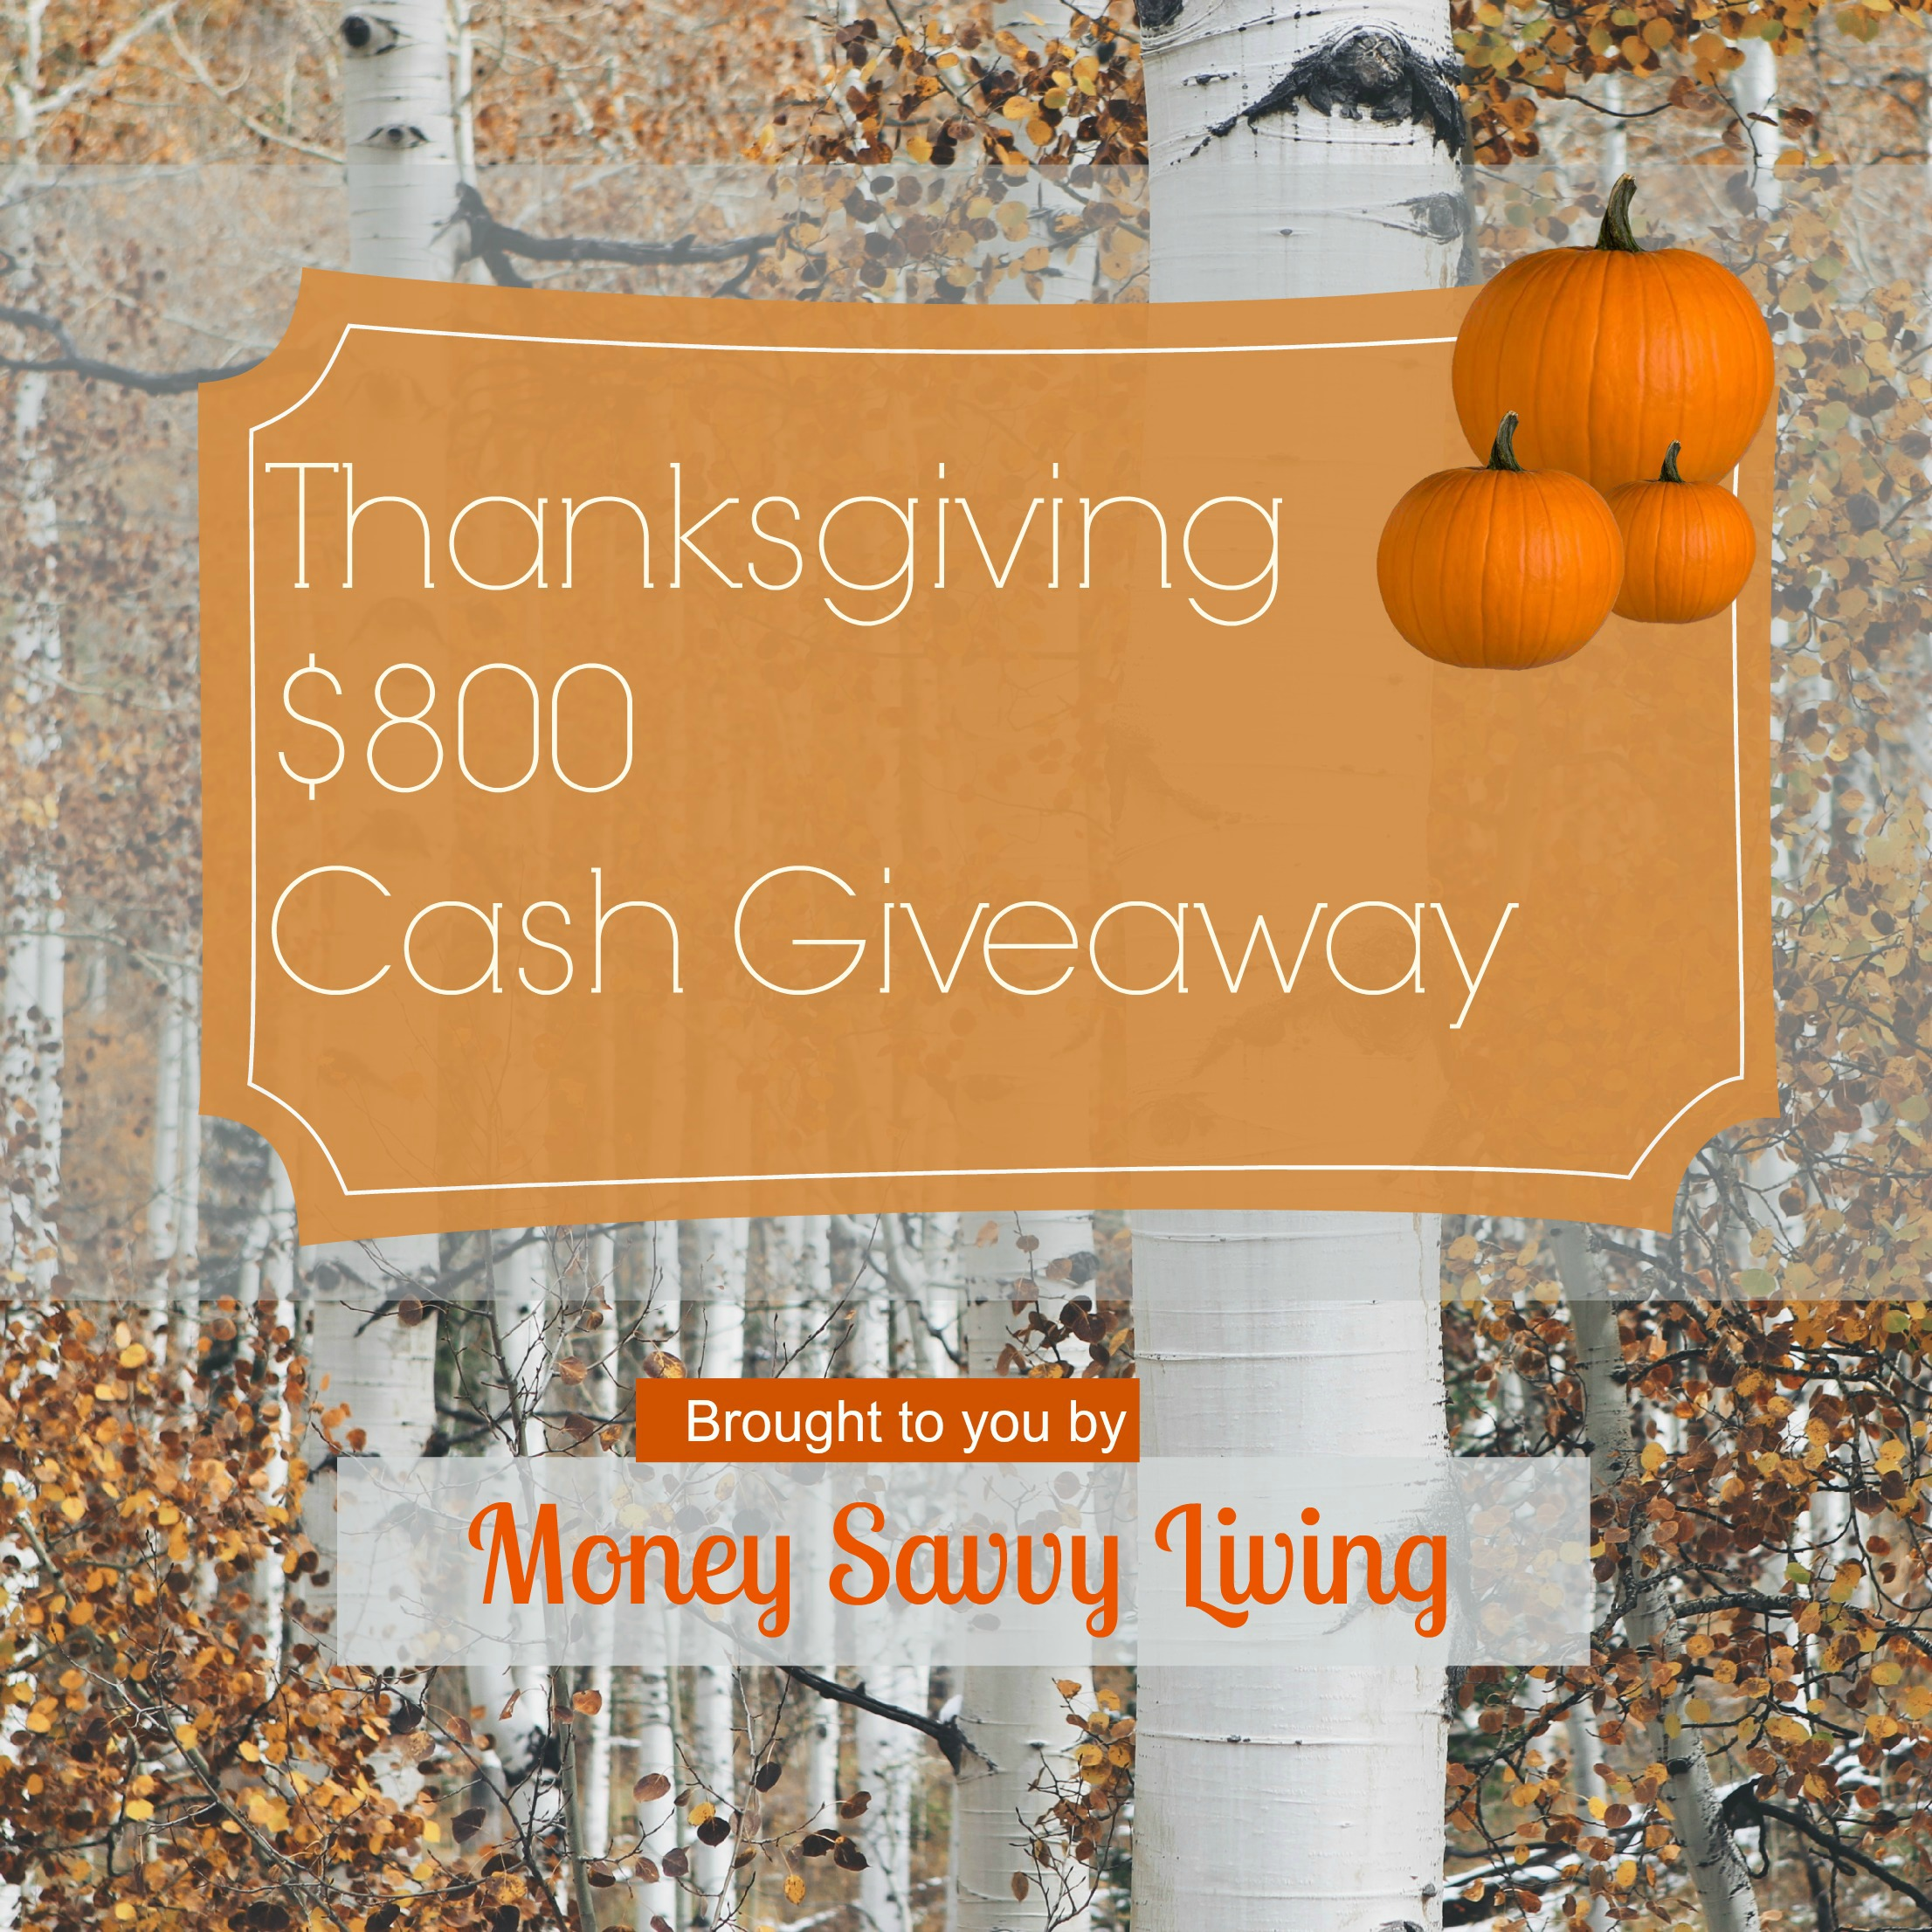 Thanksgiving Giveaway | Money Savvy Living